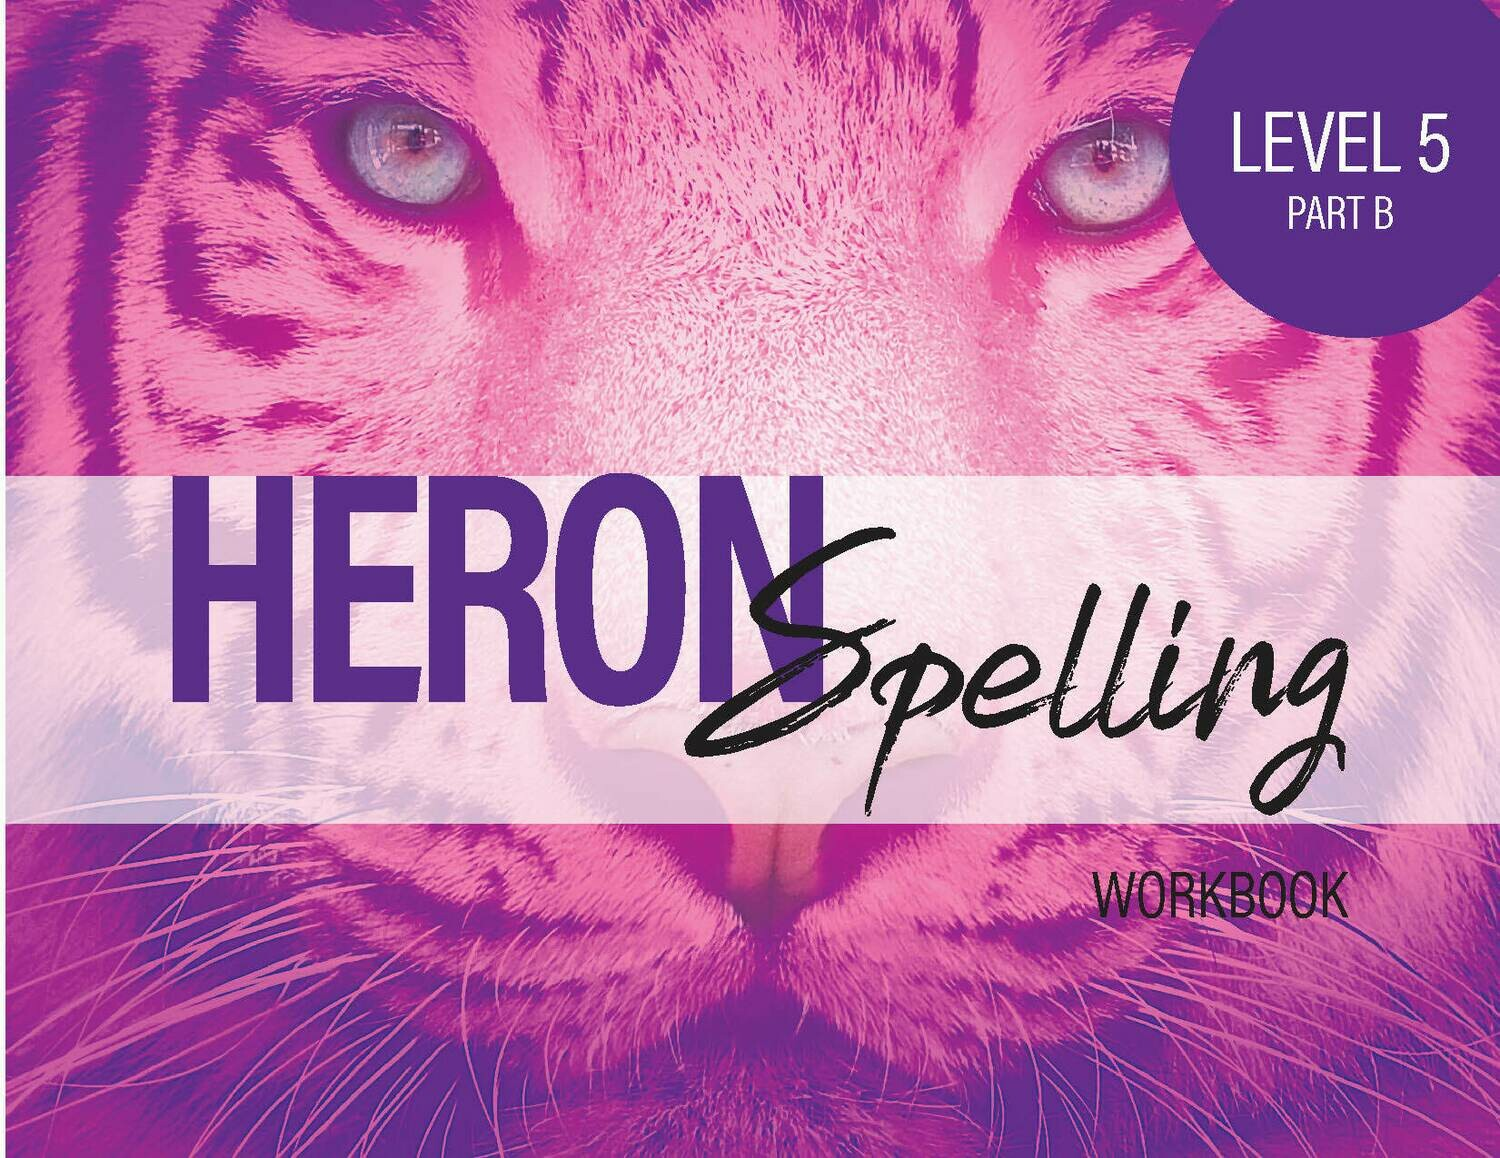 Heron Spelling Level 5B Workbook